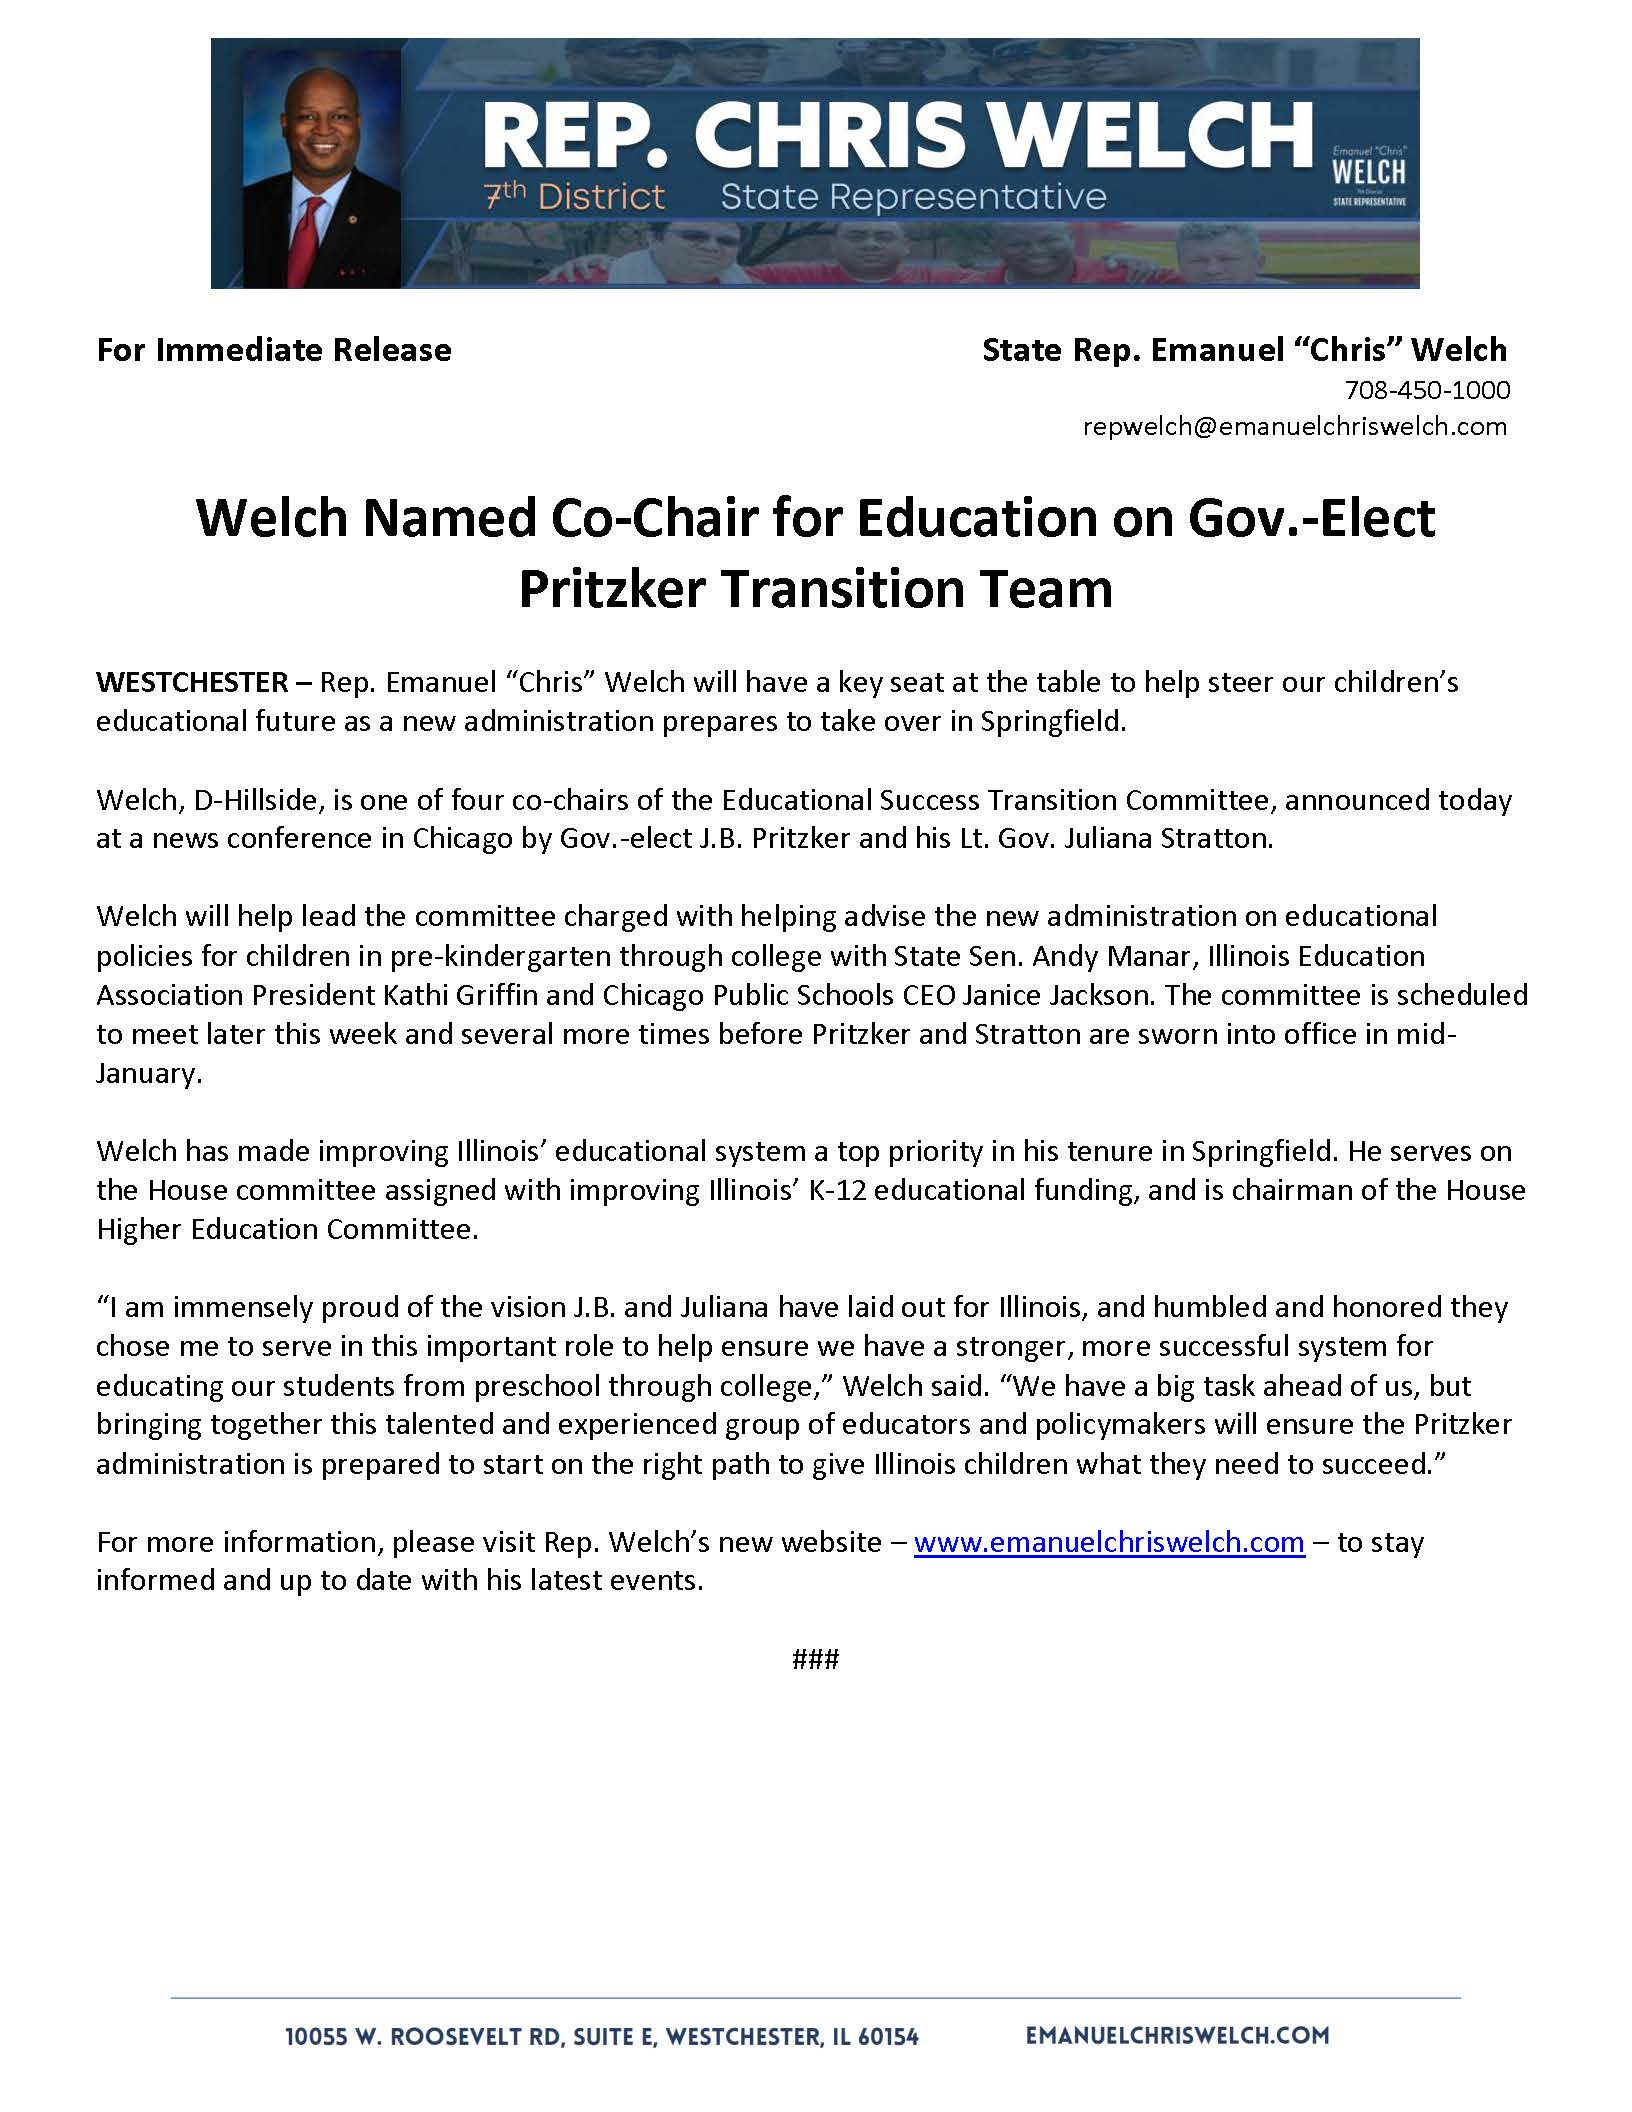 Welch Named Co-Chair for Education on Gov.-Elect Pritzker Transition Team  (November 27, 2018)